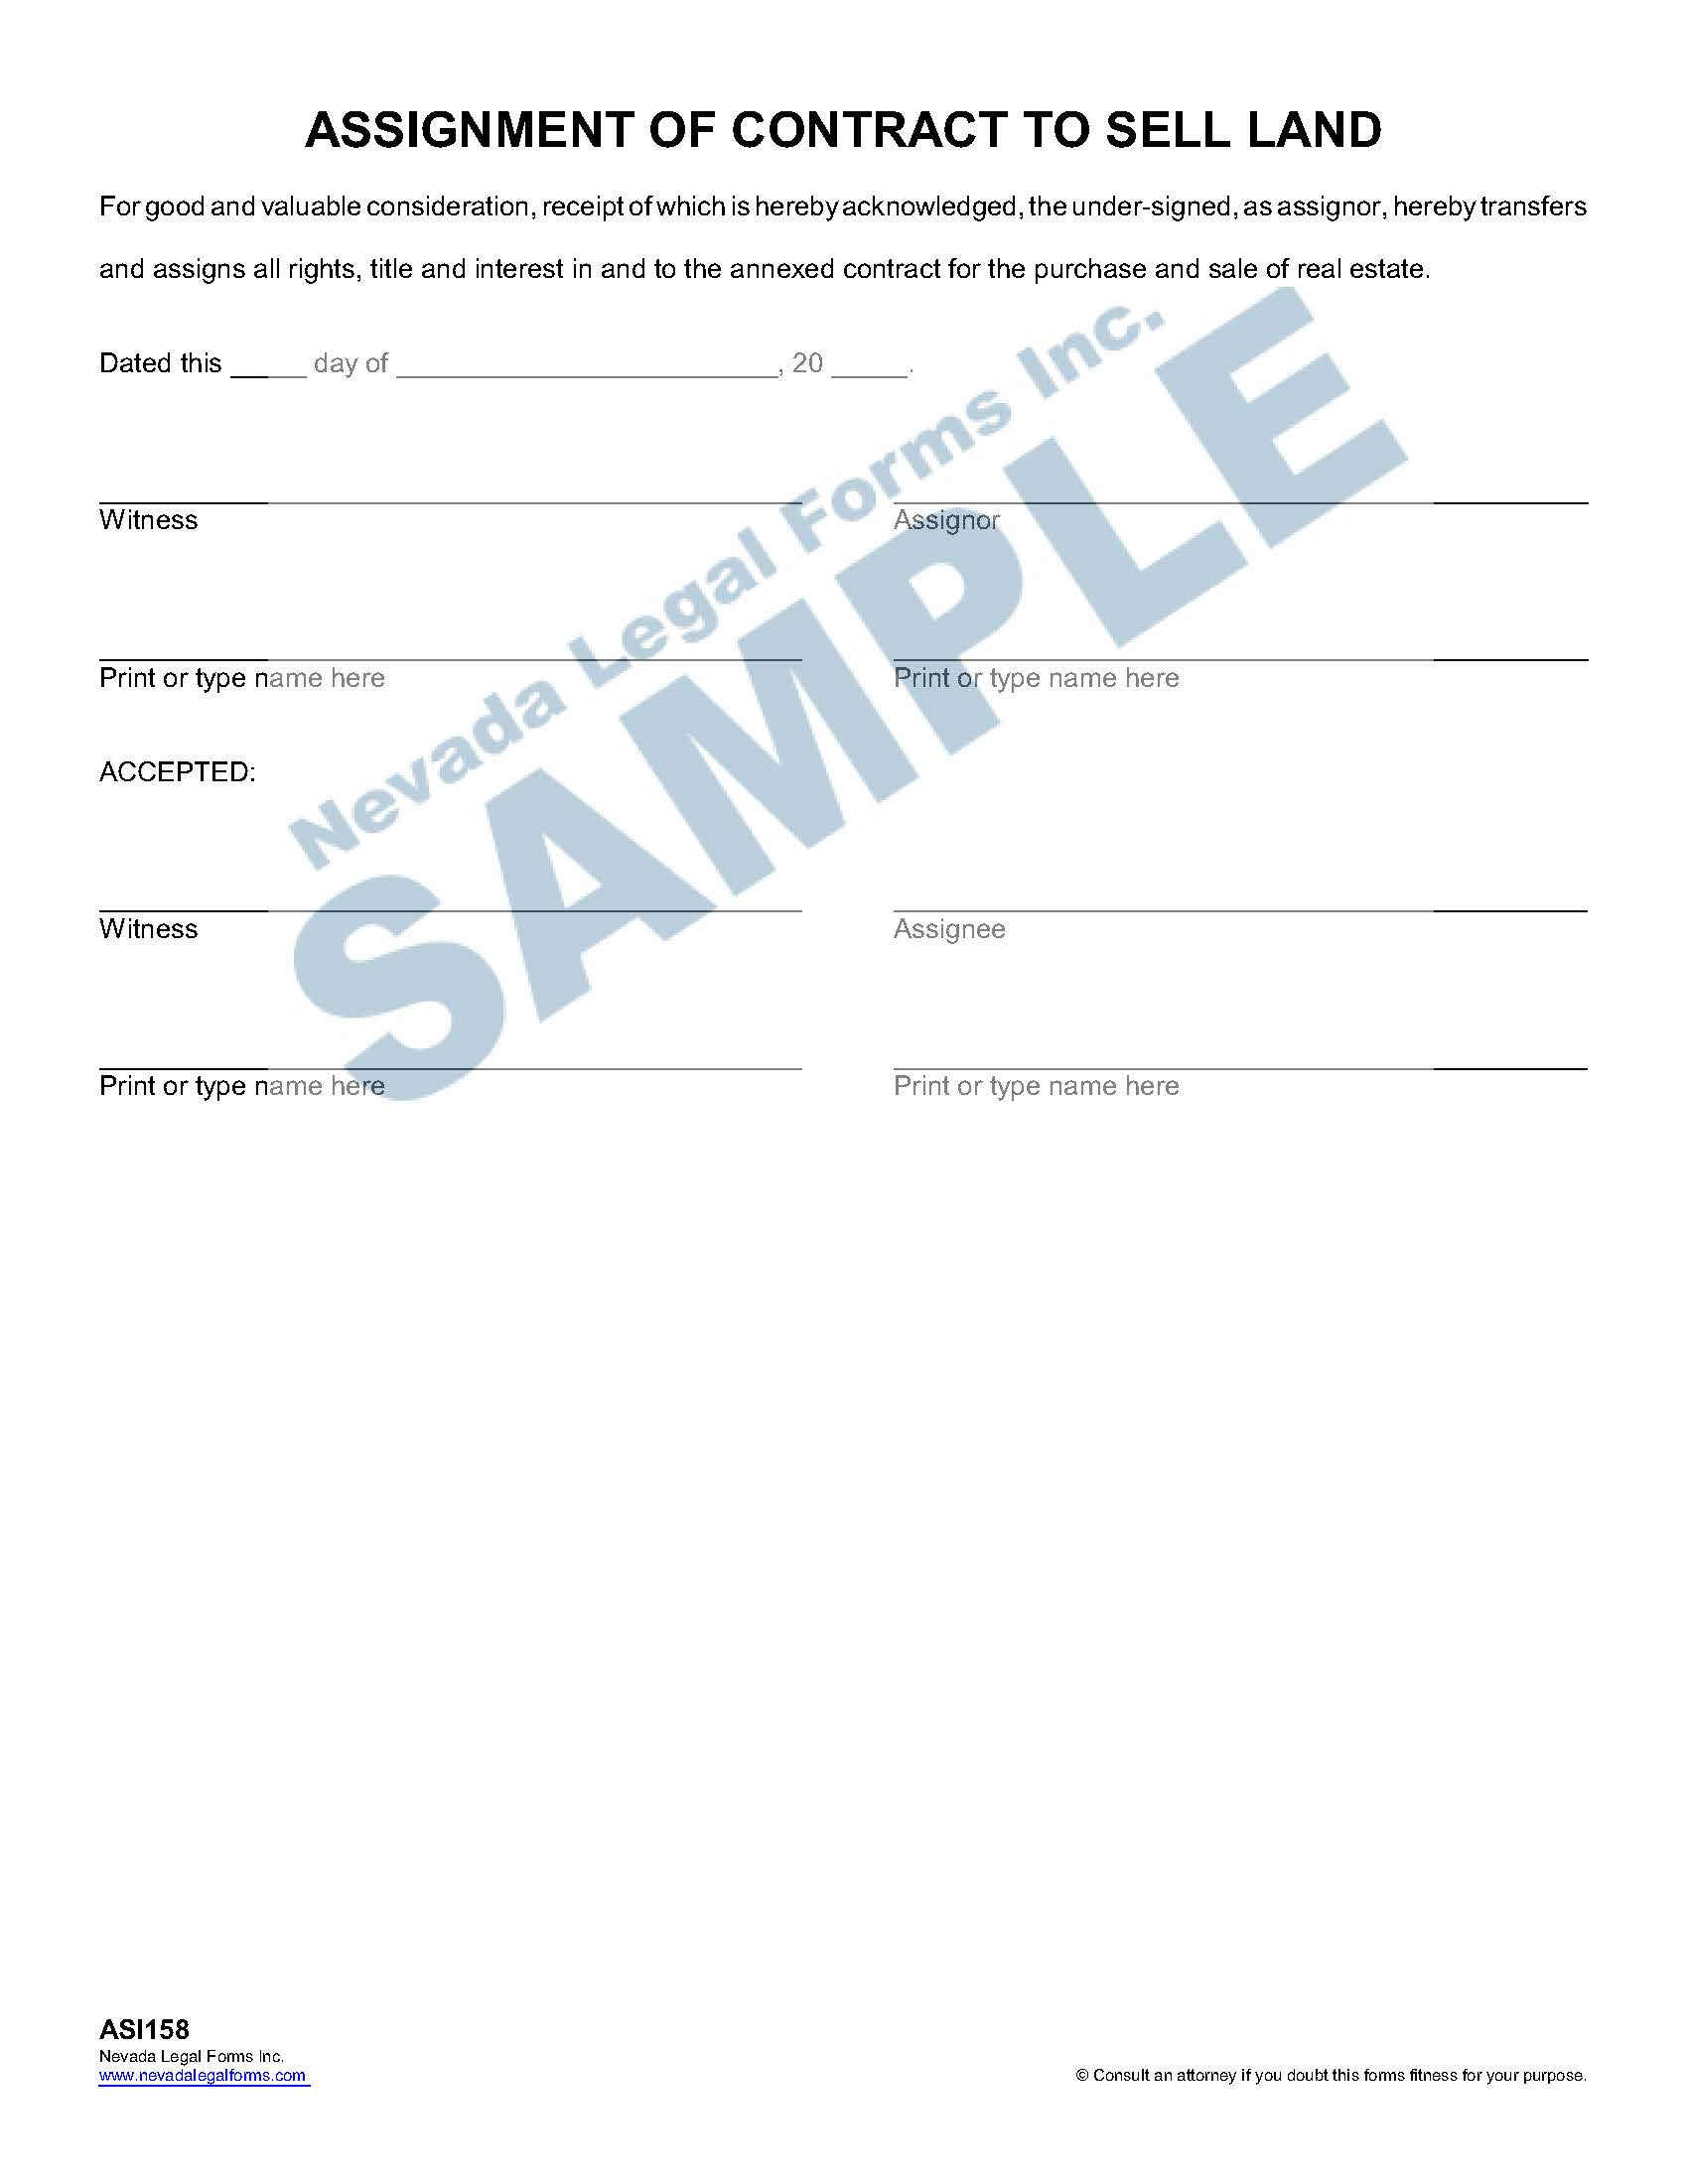 Assignment Of Contract To Sell Land